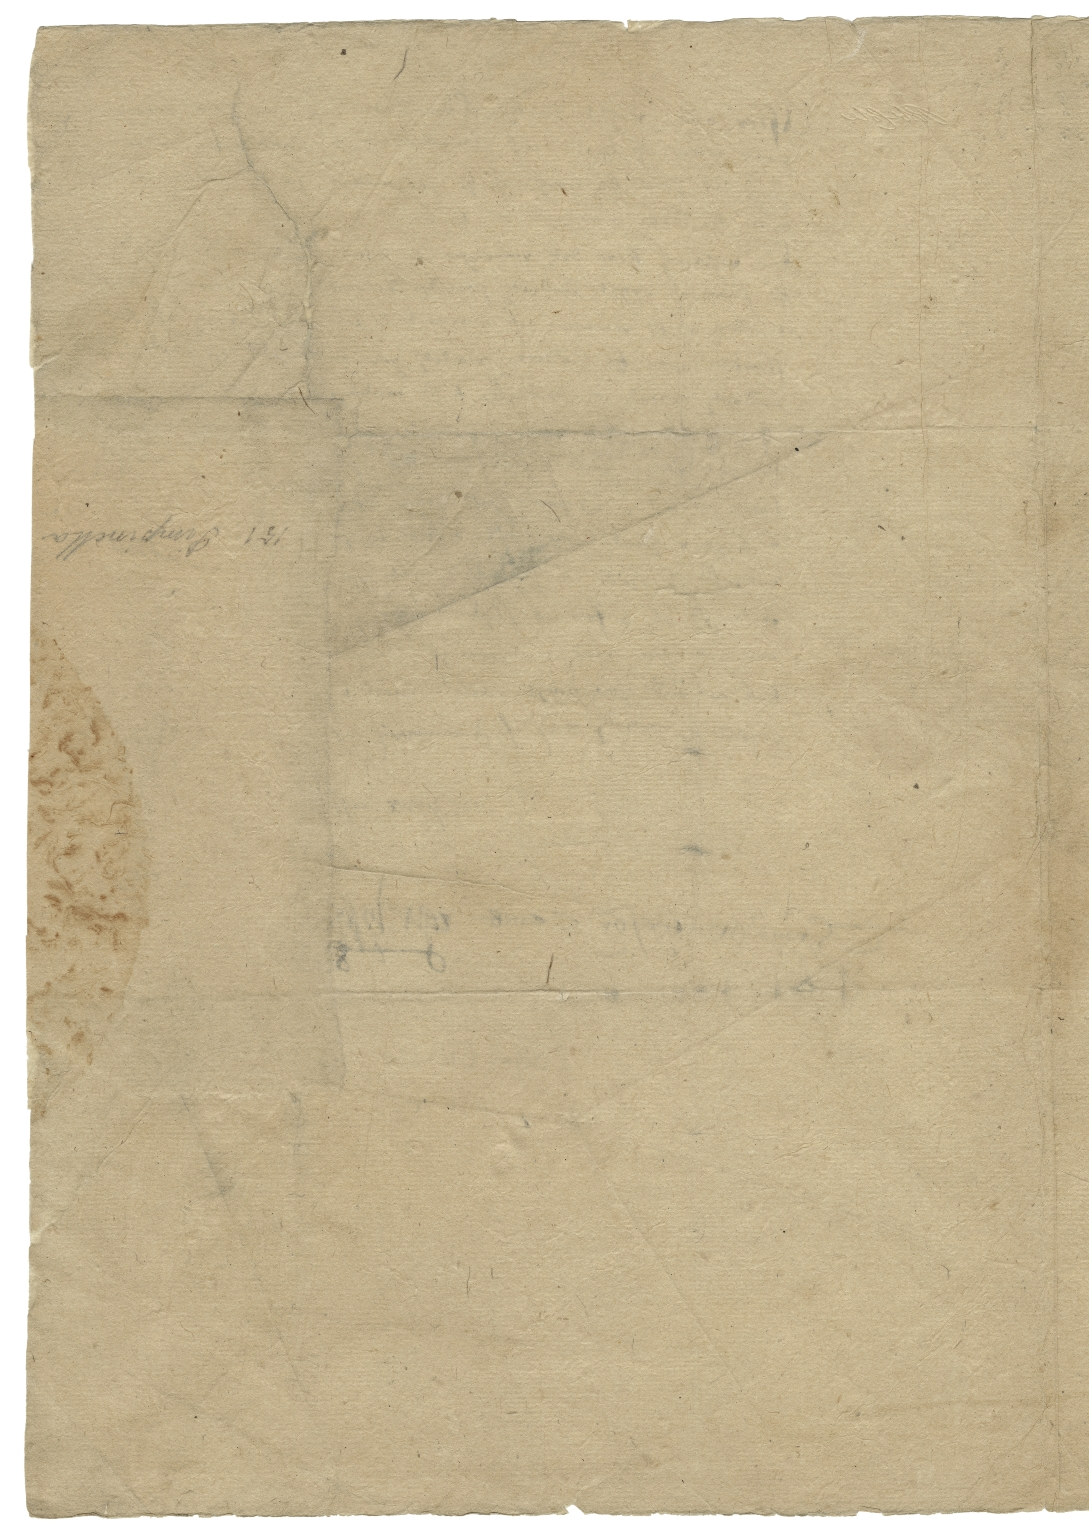 Letter signed from the Privy Council to Michael Stanhope, Governor of Hull